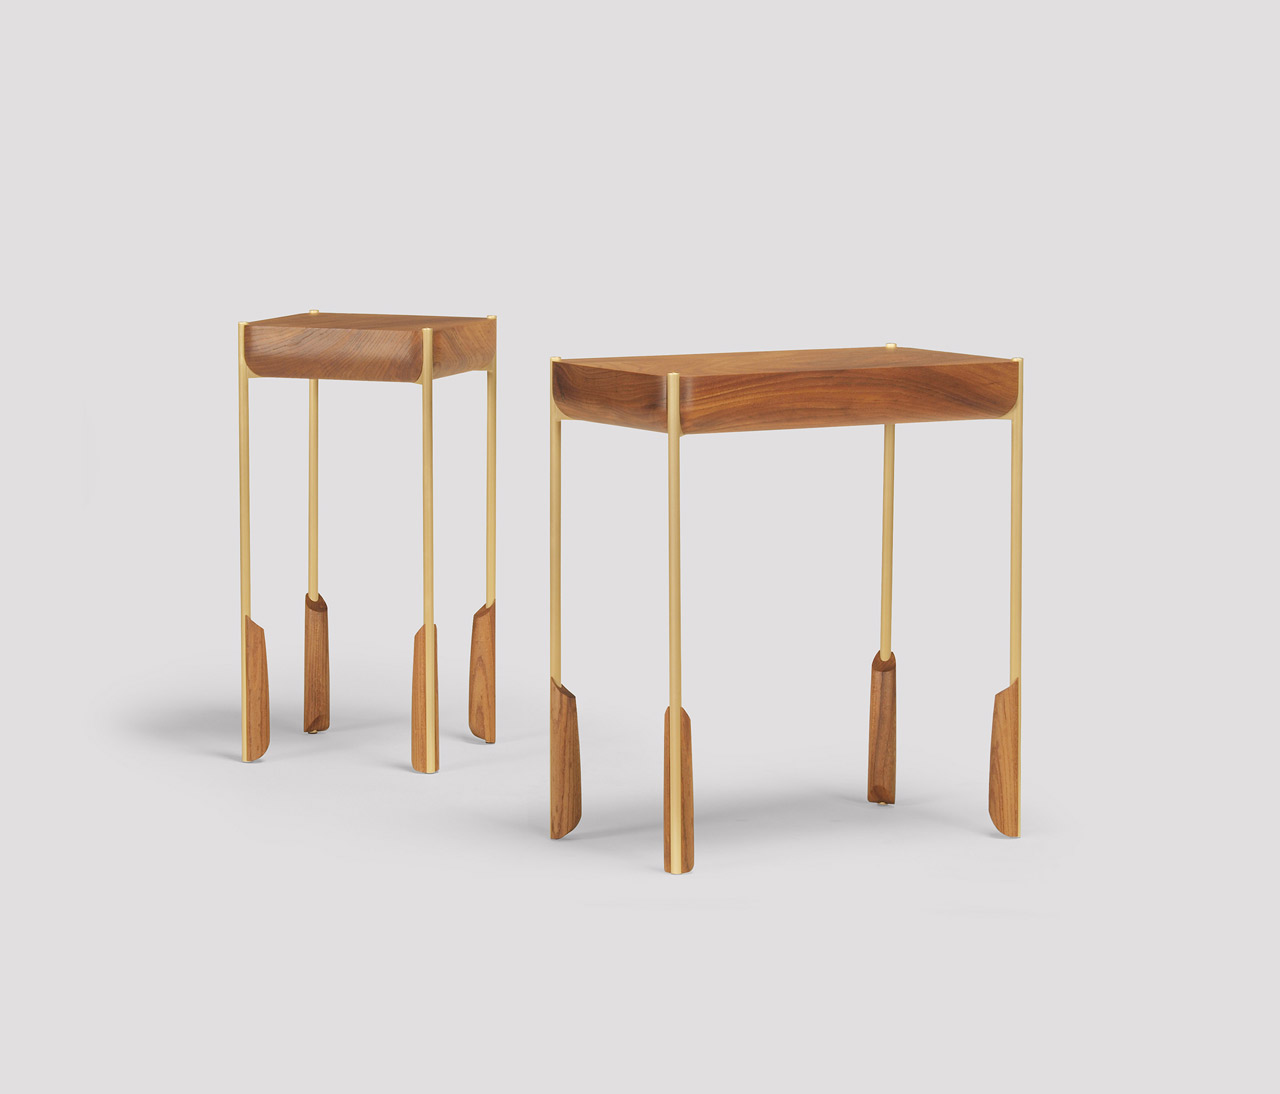 The Design and Manufacturing Process of Skram's Altai Side Table